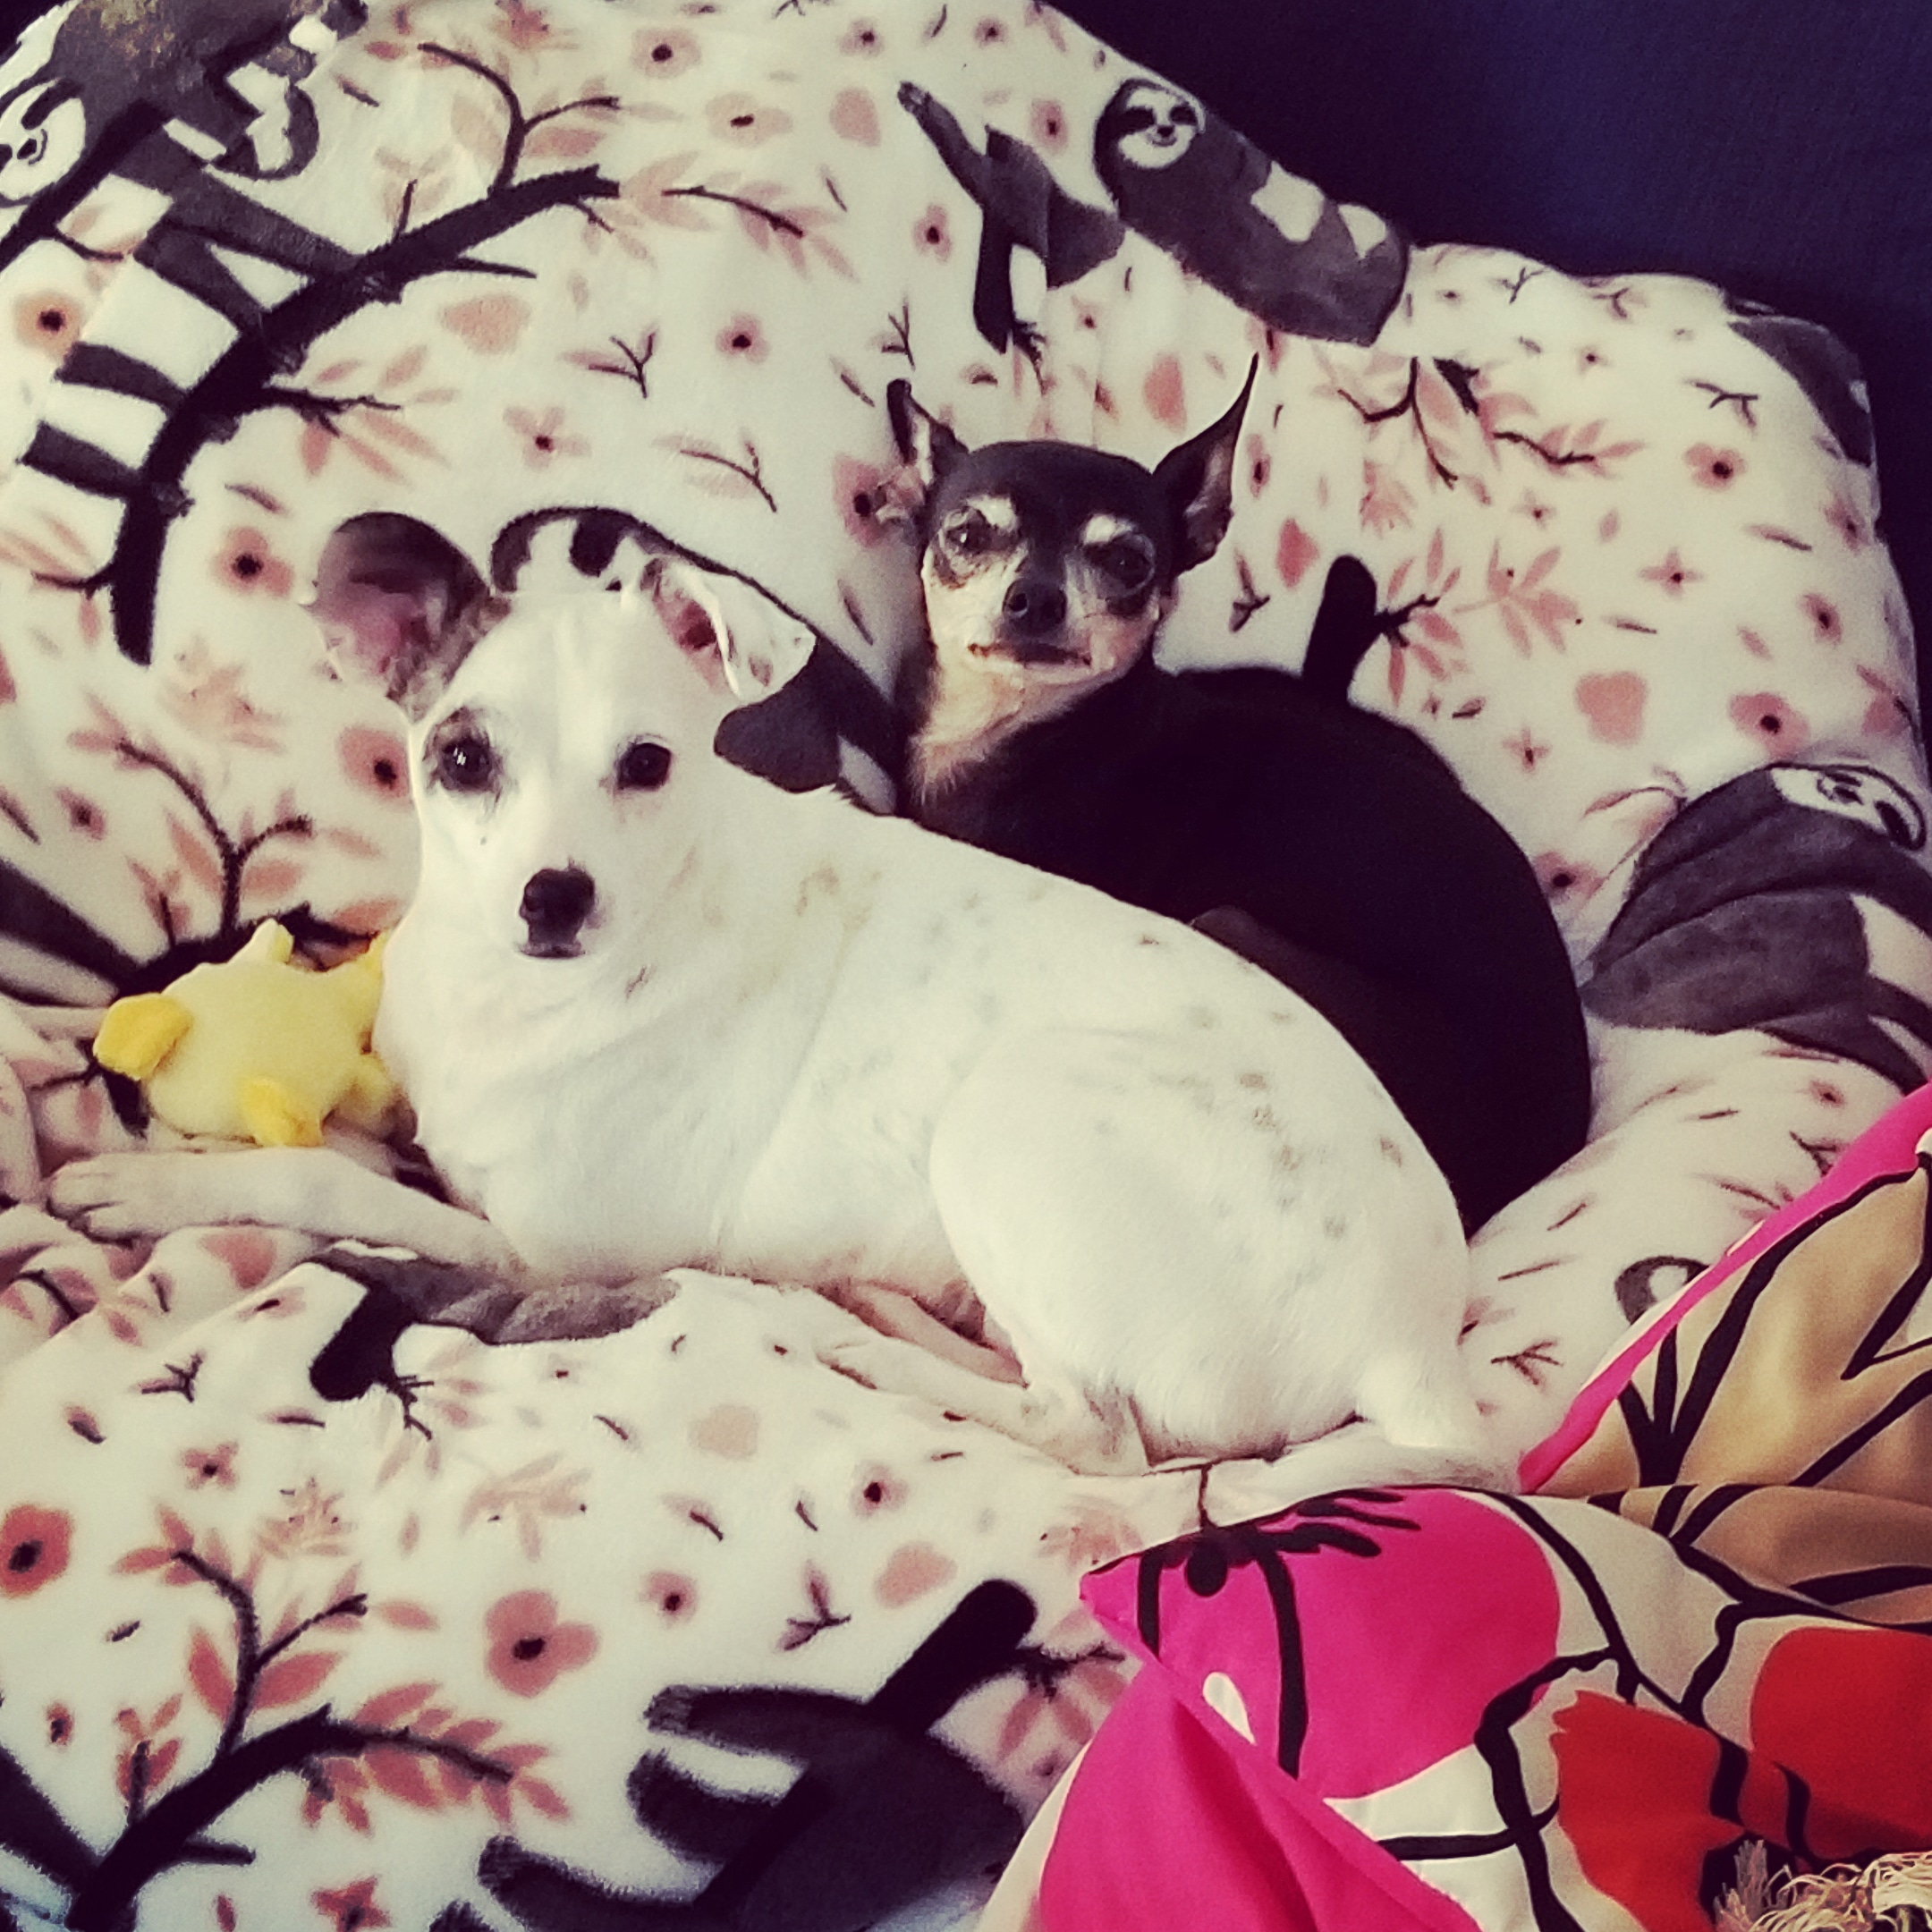 Small black and tan chihuahua with ears pointed sitting behind a white Jack Russell mix holding a yellow duck. Both dogs sitting on a white bed with sloths.